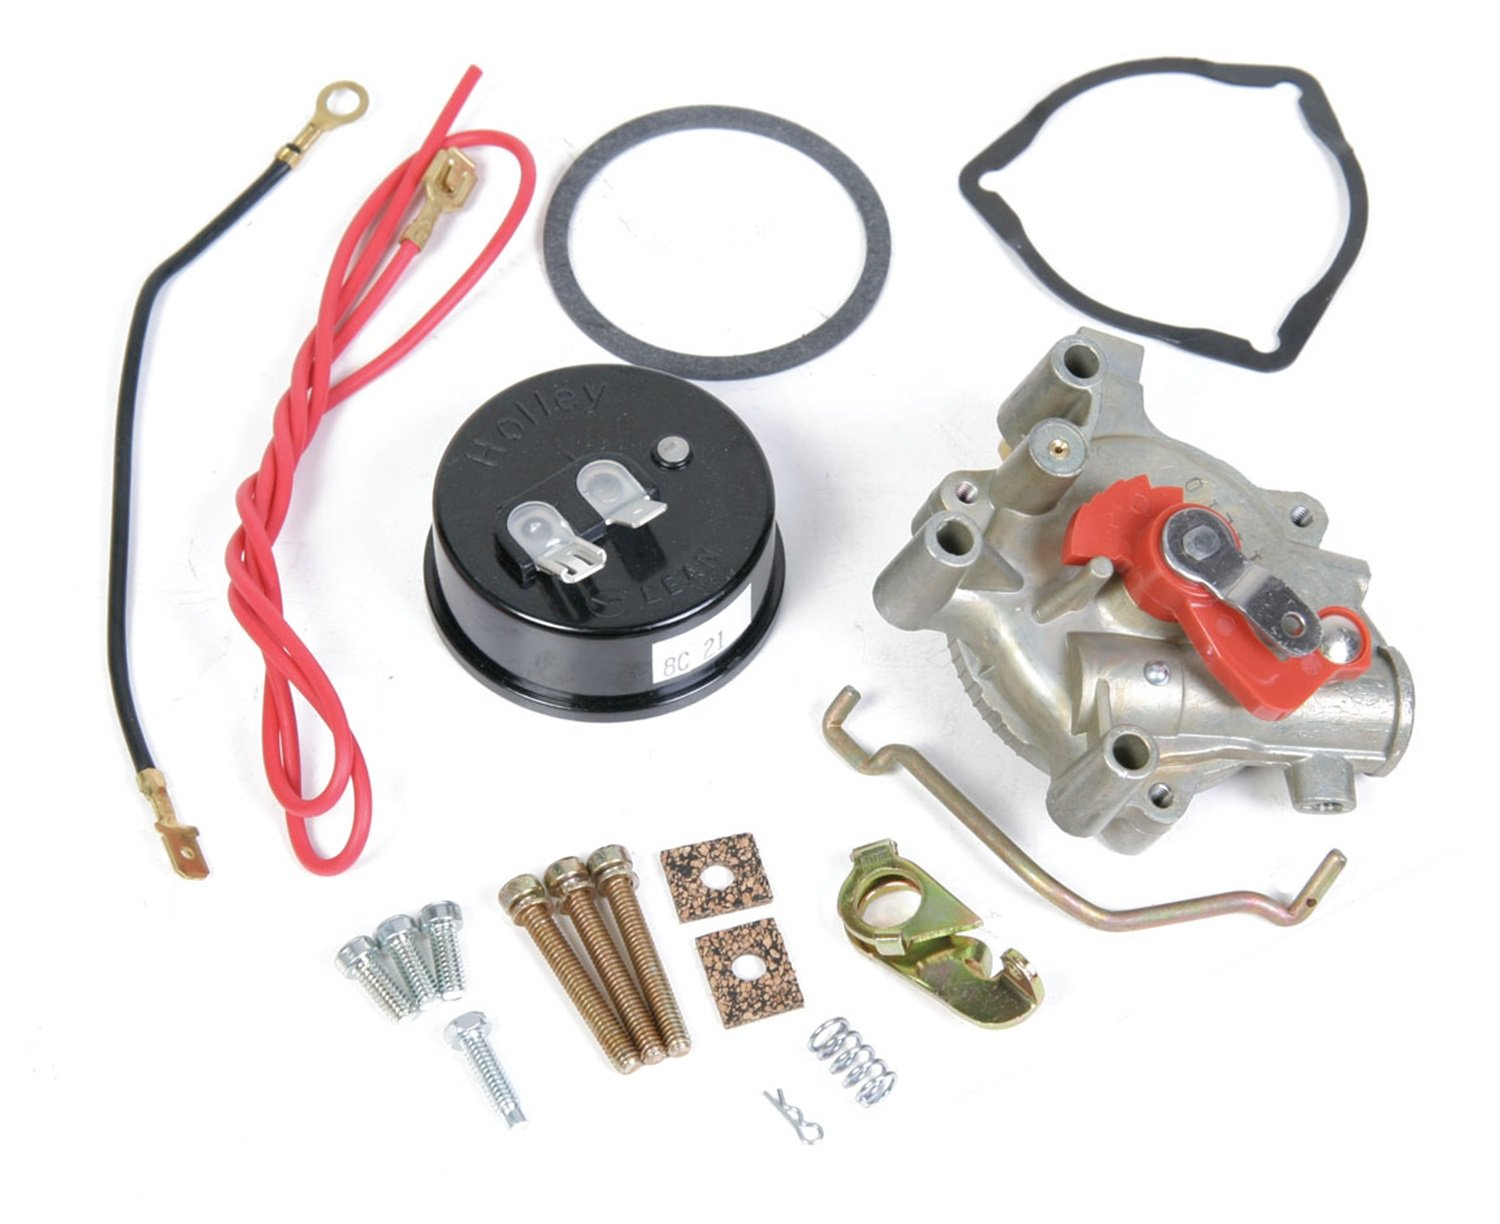 Strange Best Rated In Automotive Replacement Electric Choke Conversion Kits Wiring Digital Resources Apanbouhousnl